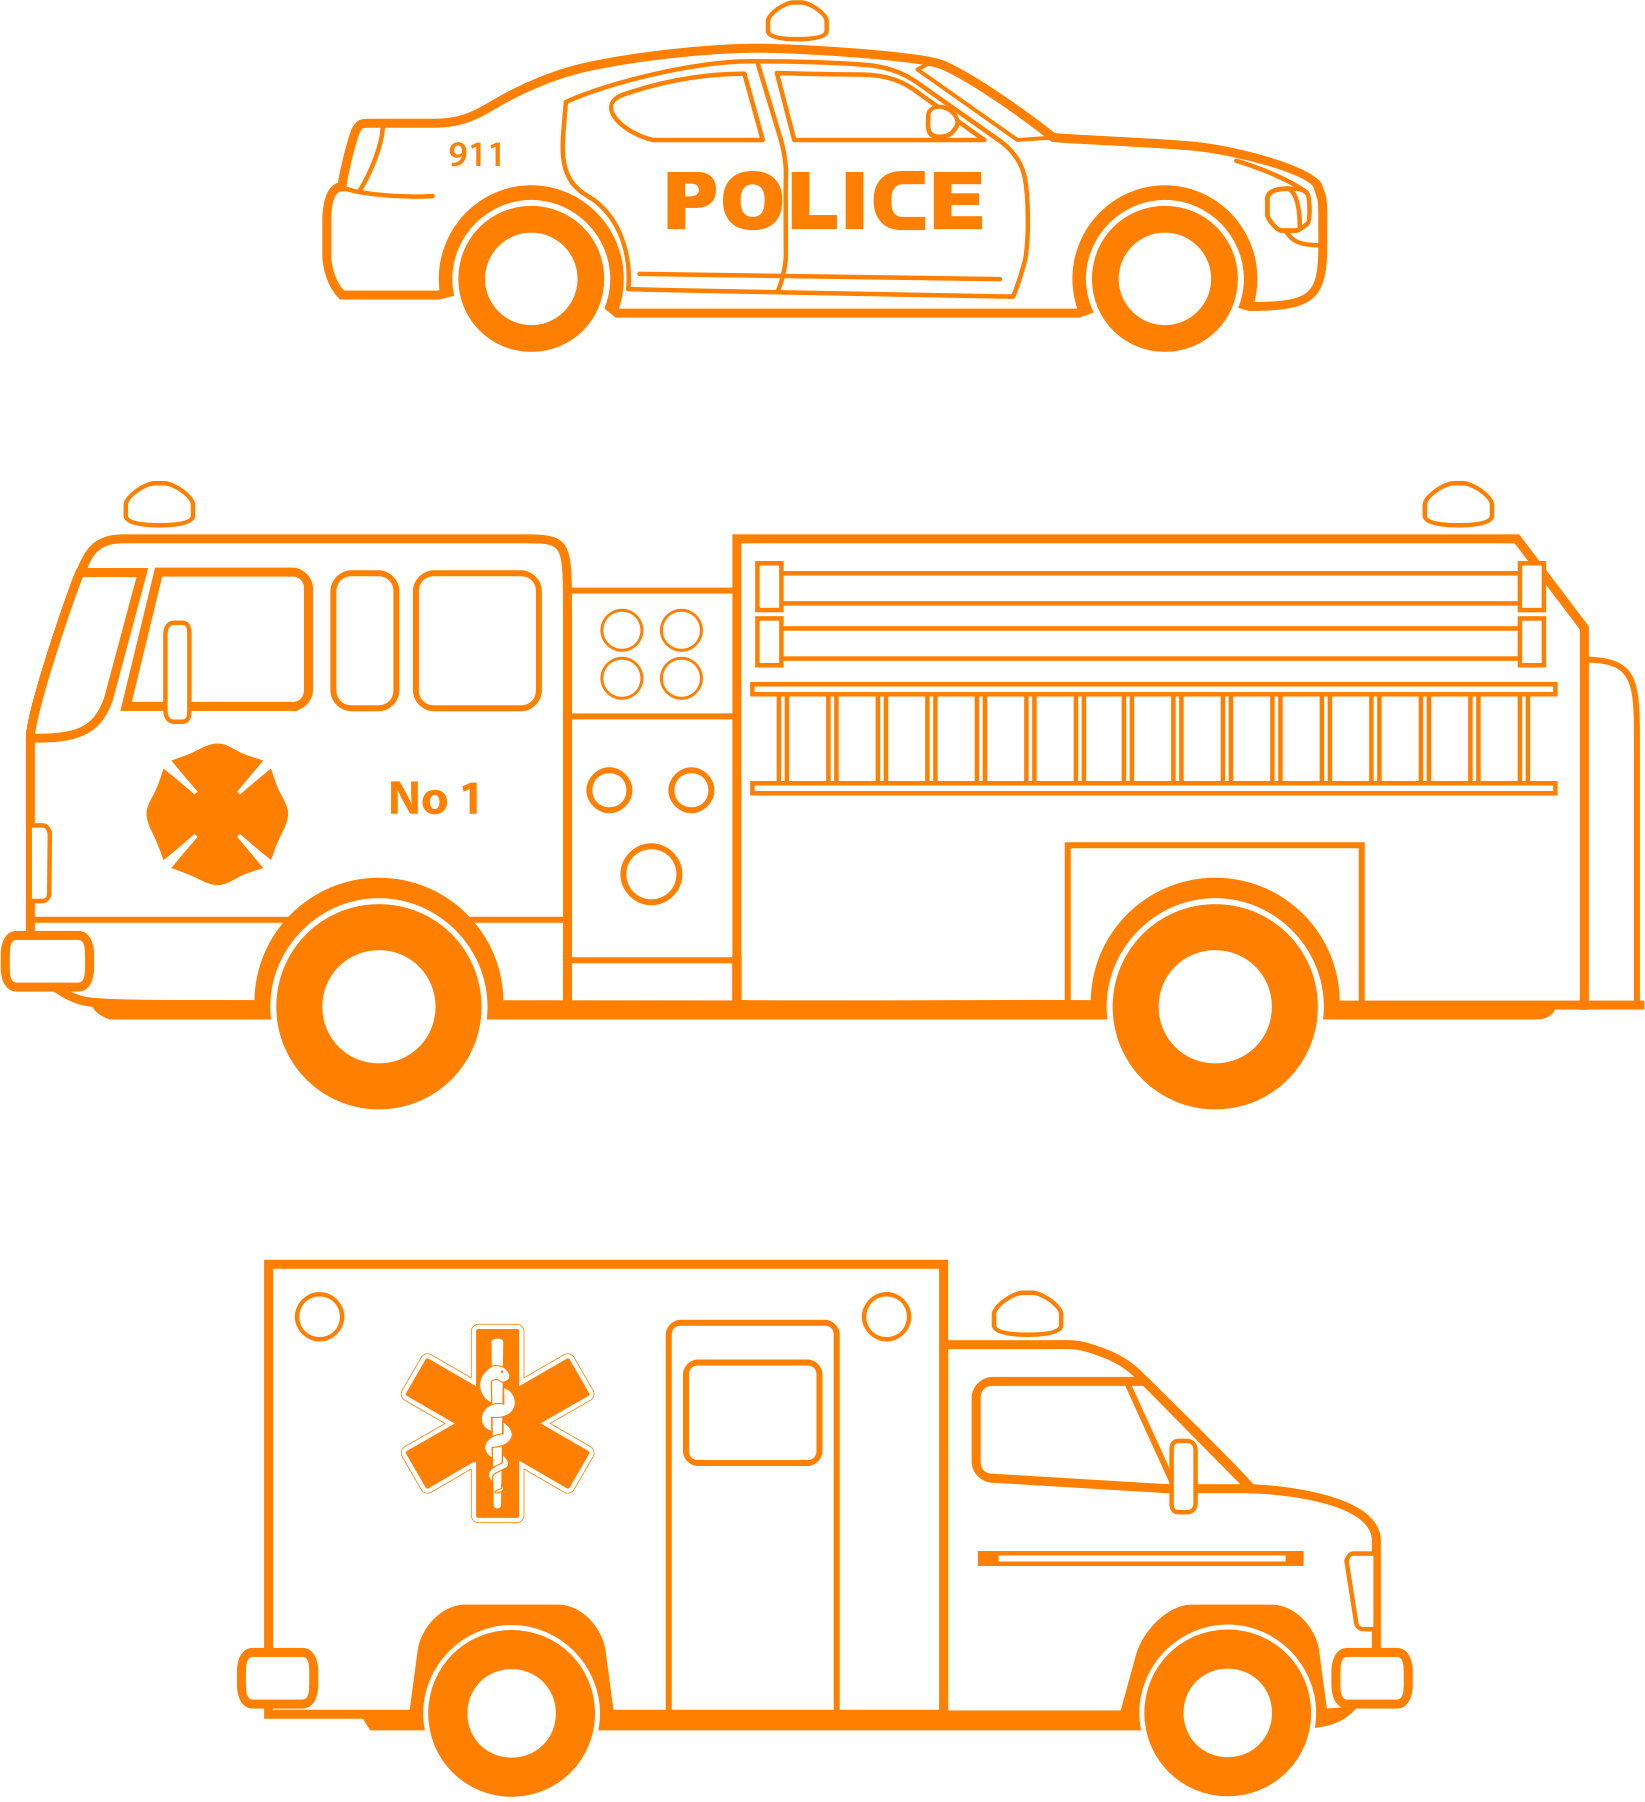 picture transparent download 911 clipart fire emergency. Police ema big image